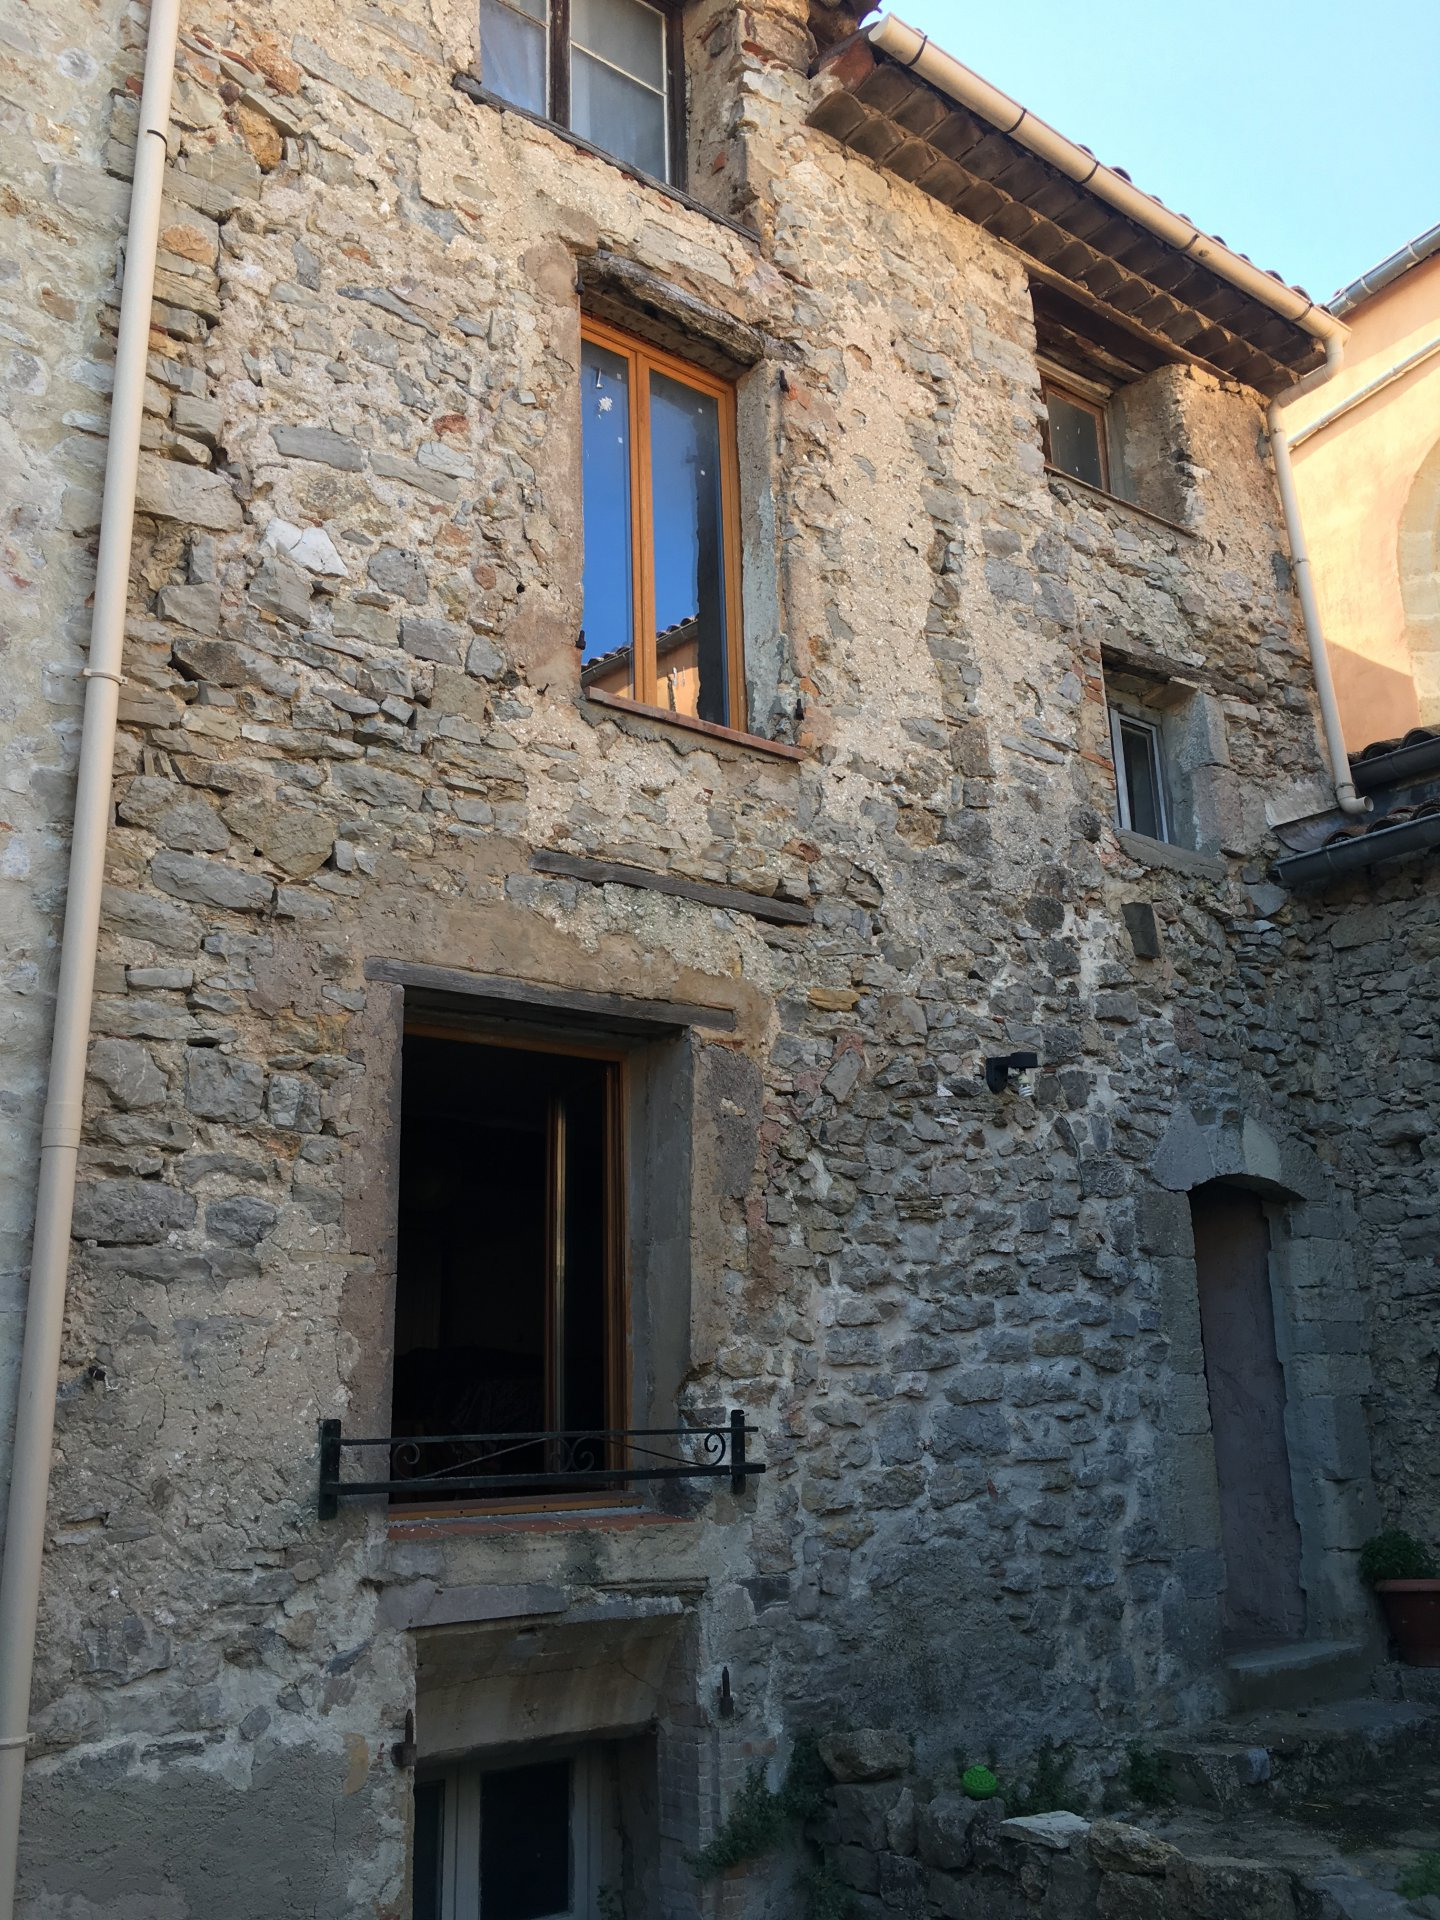 Former host house to be renovated, with garden and terace